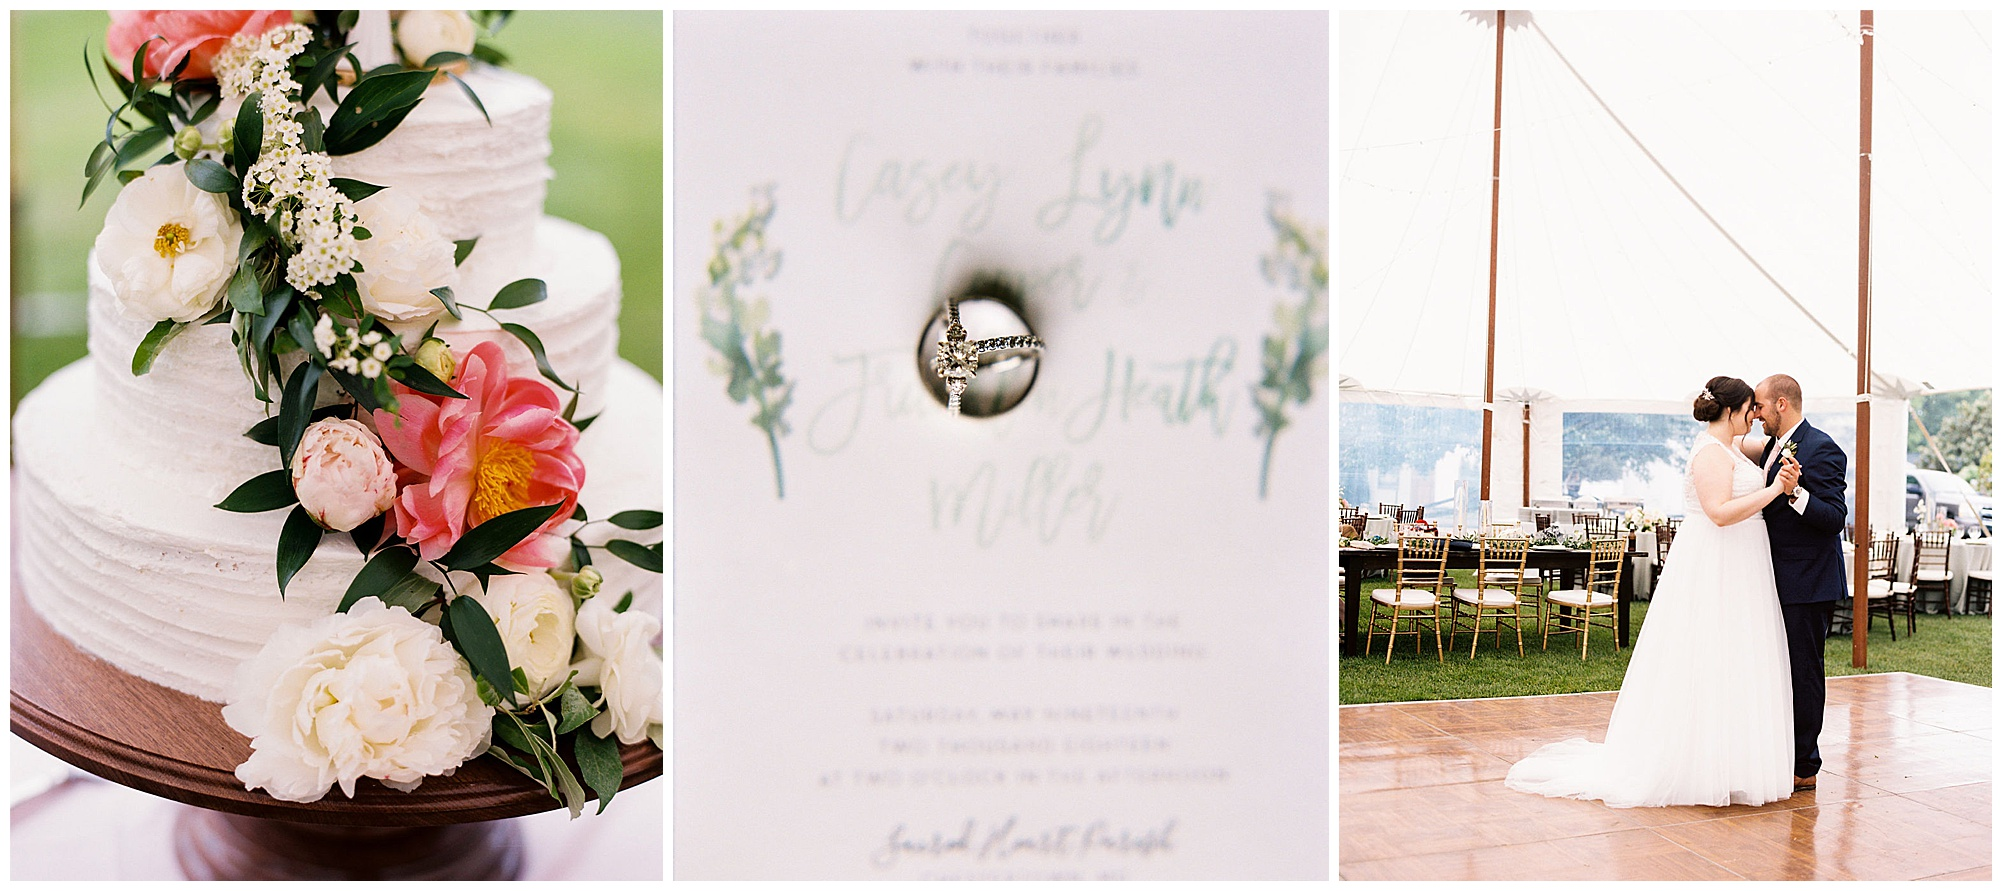 timeless wedding inspiration full of romance, boho, and water views at the inn at huntingfield in rock hall maryland now on wedding blog my eastern shore wedding